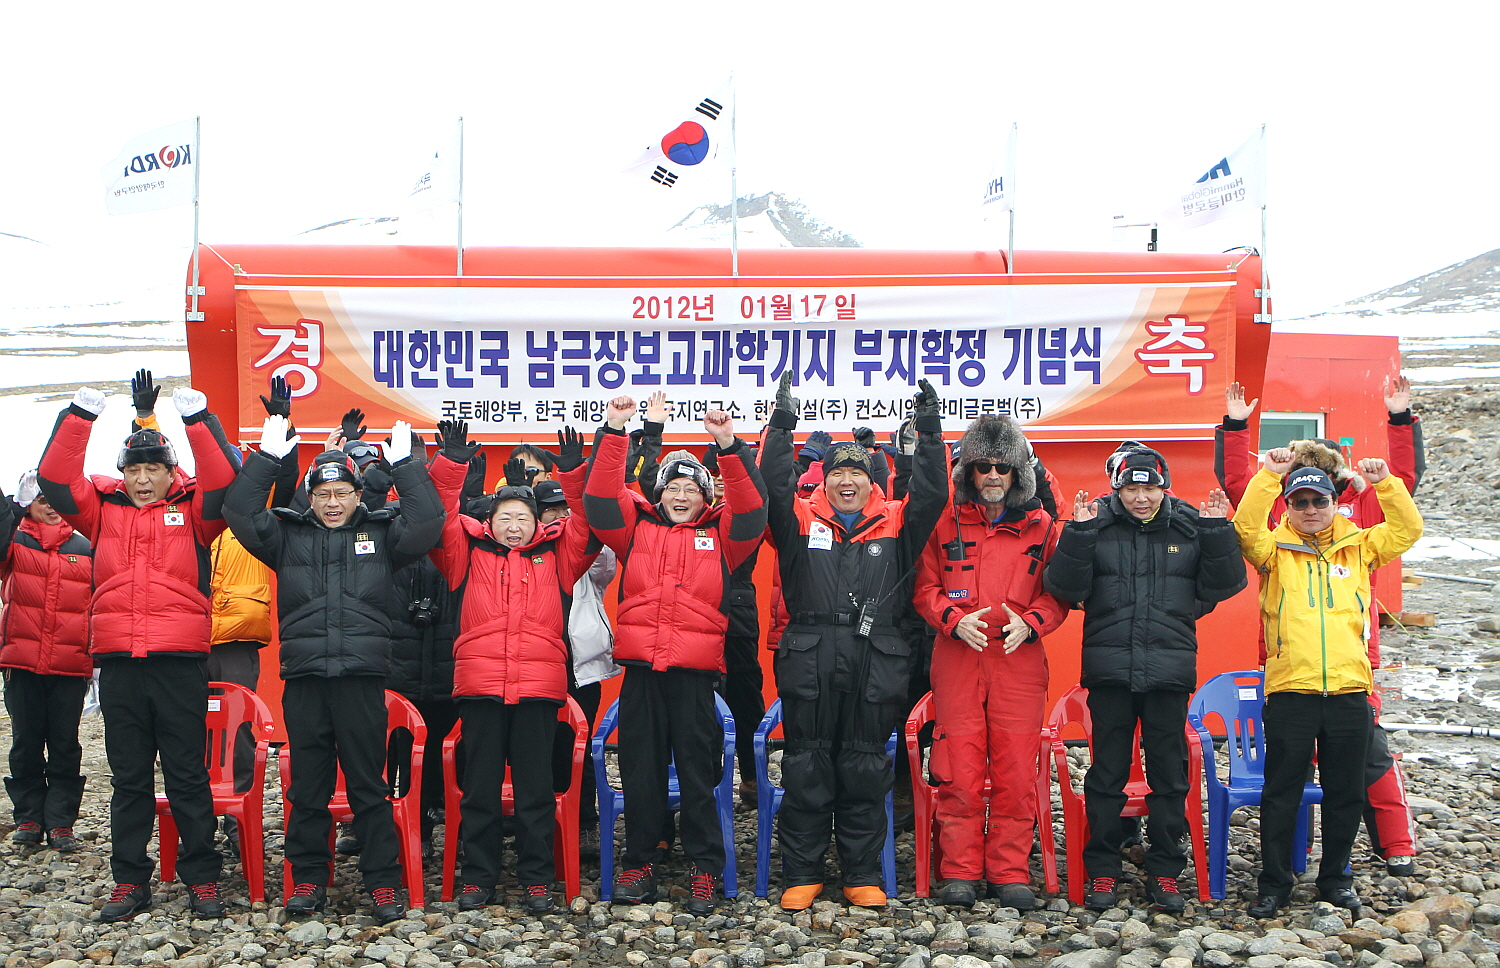 Launch of the Korea Maritime Institute of Science and Technology (KIOST)as an affiliated research institute of KOPRI